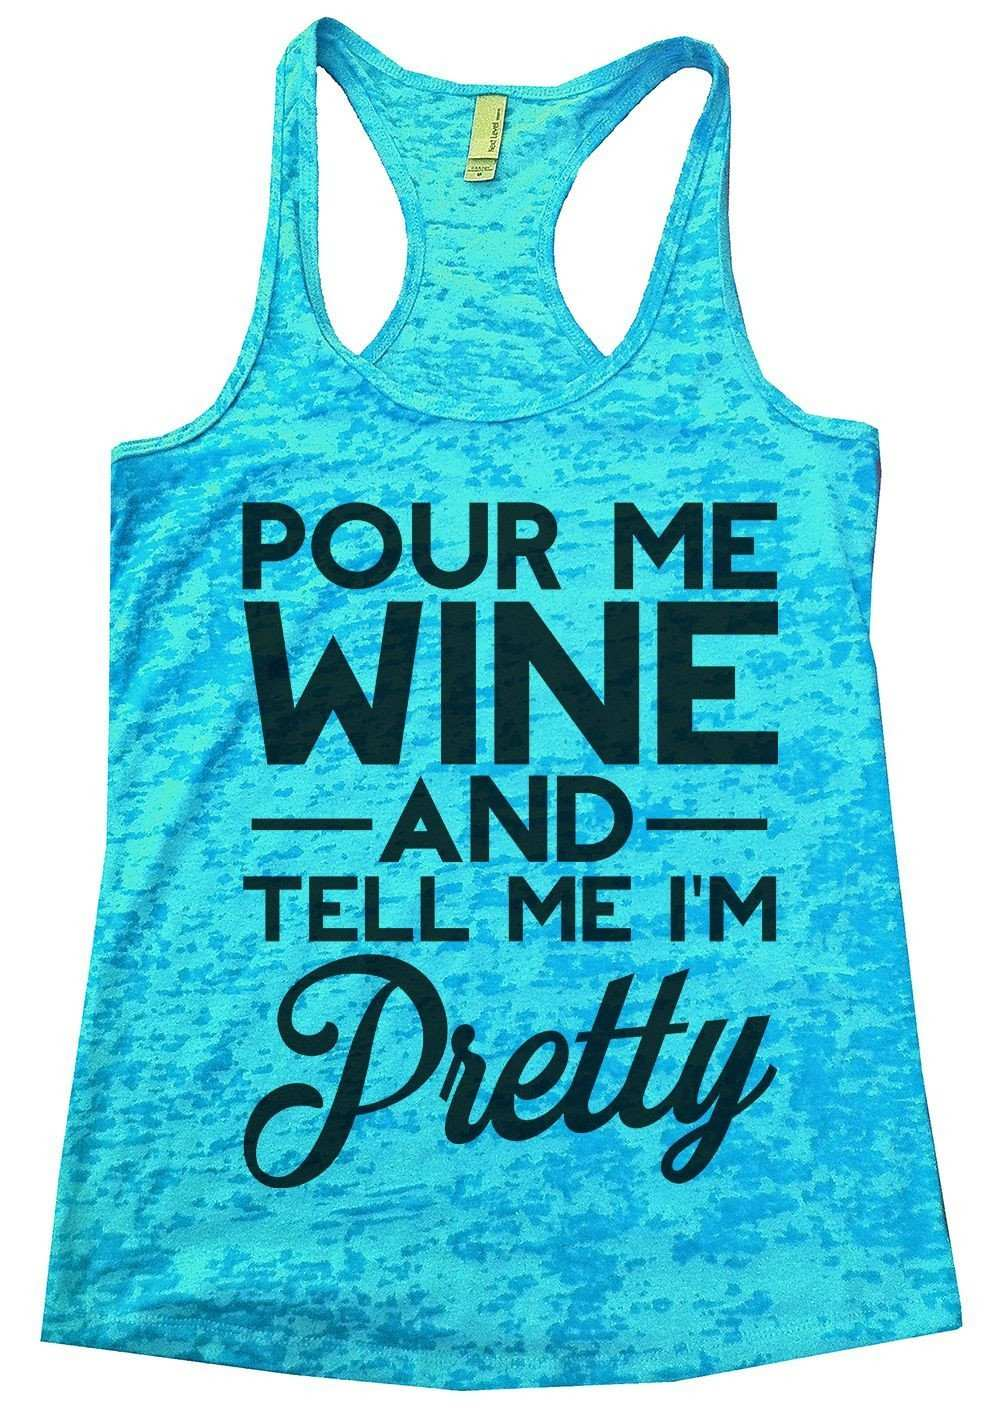 ef79876d29e60 Pour Me Wine And Tell Me I m Pretty Burnout Tank Top By Funny Threadz